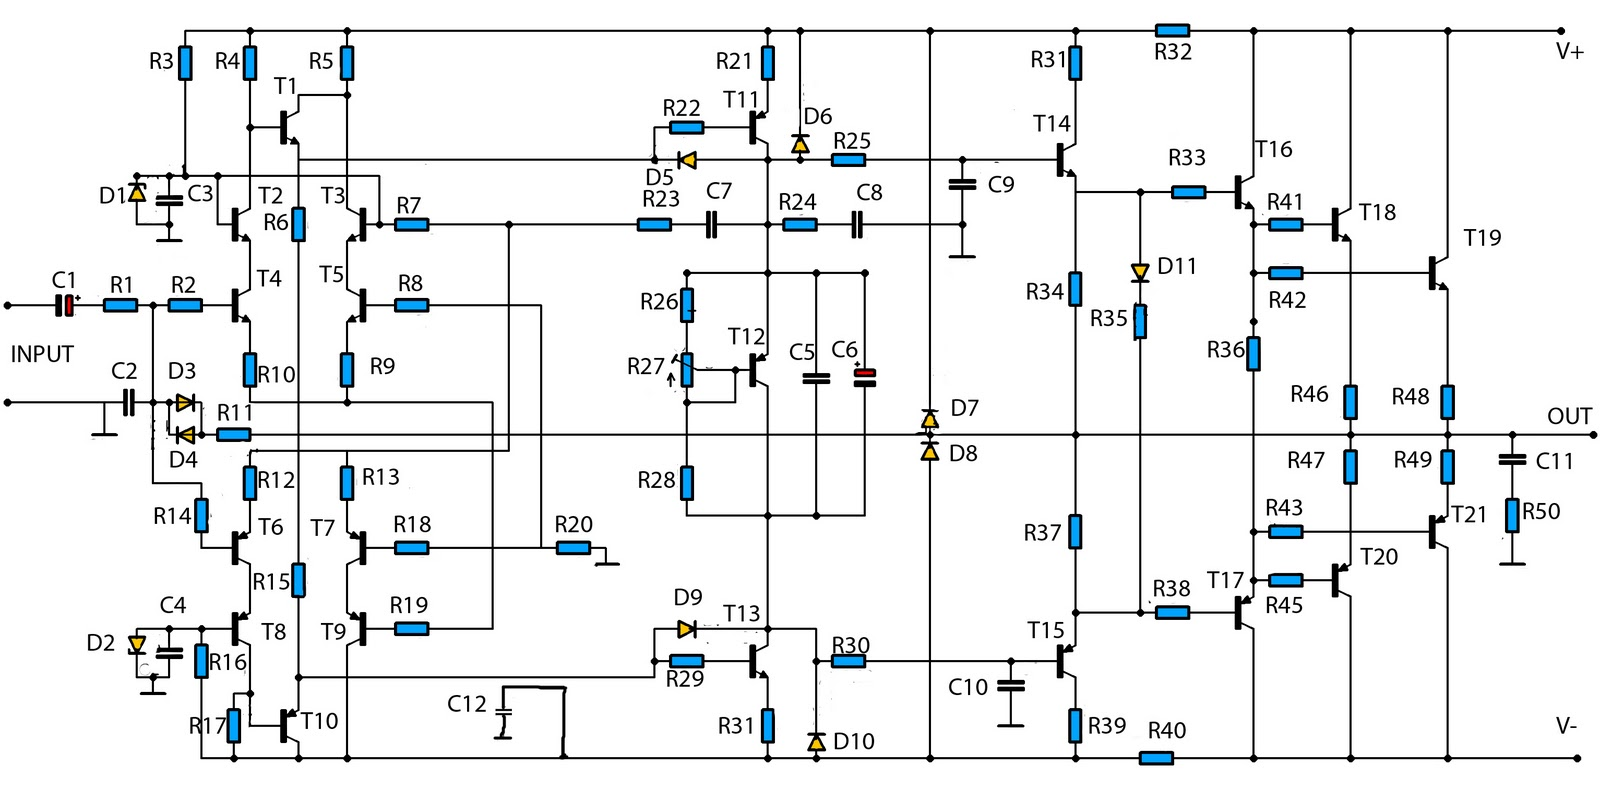 W Audio Amplifier Circuit Diagram Pictures To Pin On